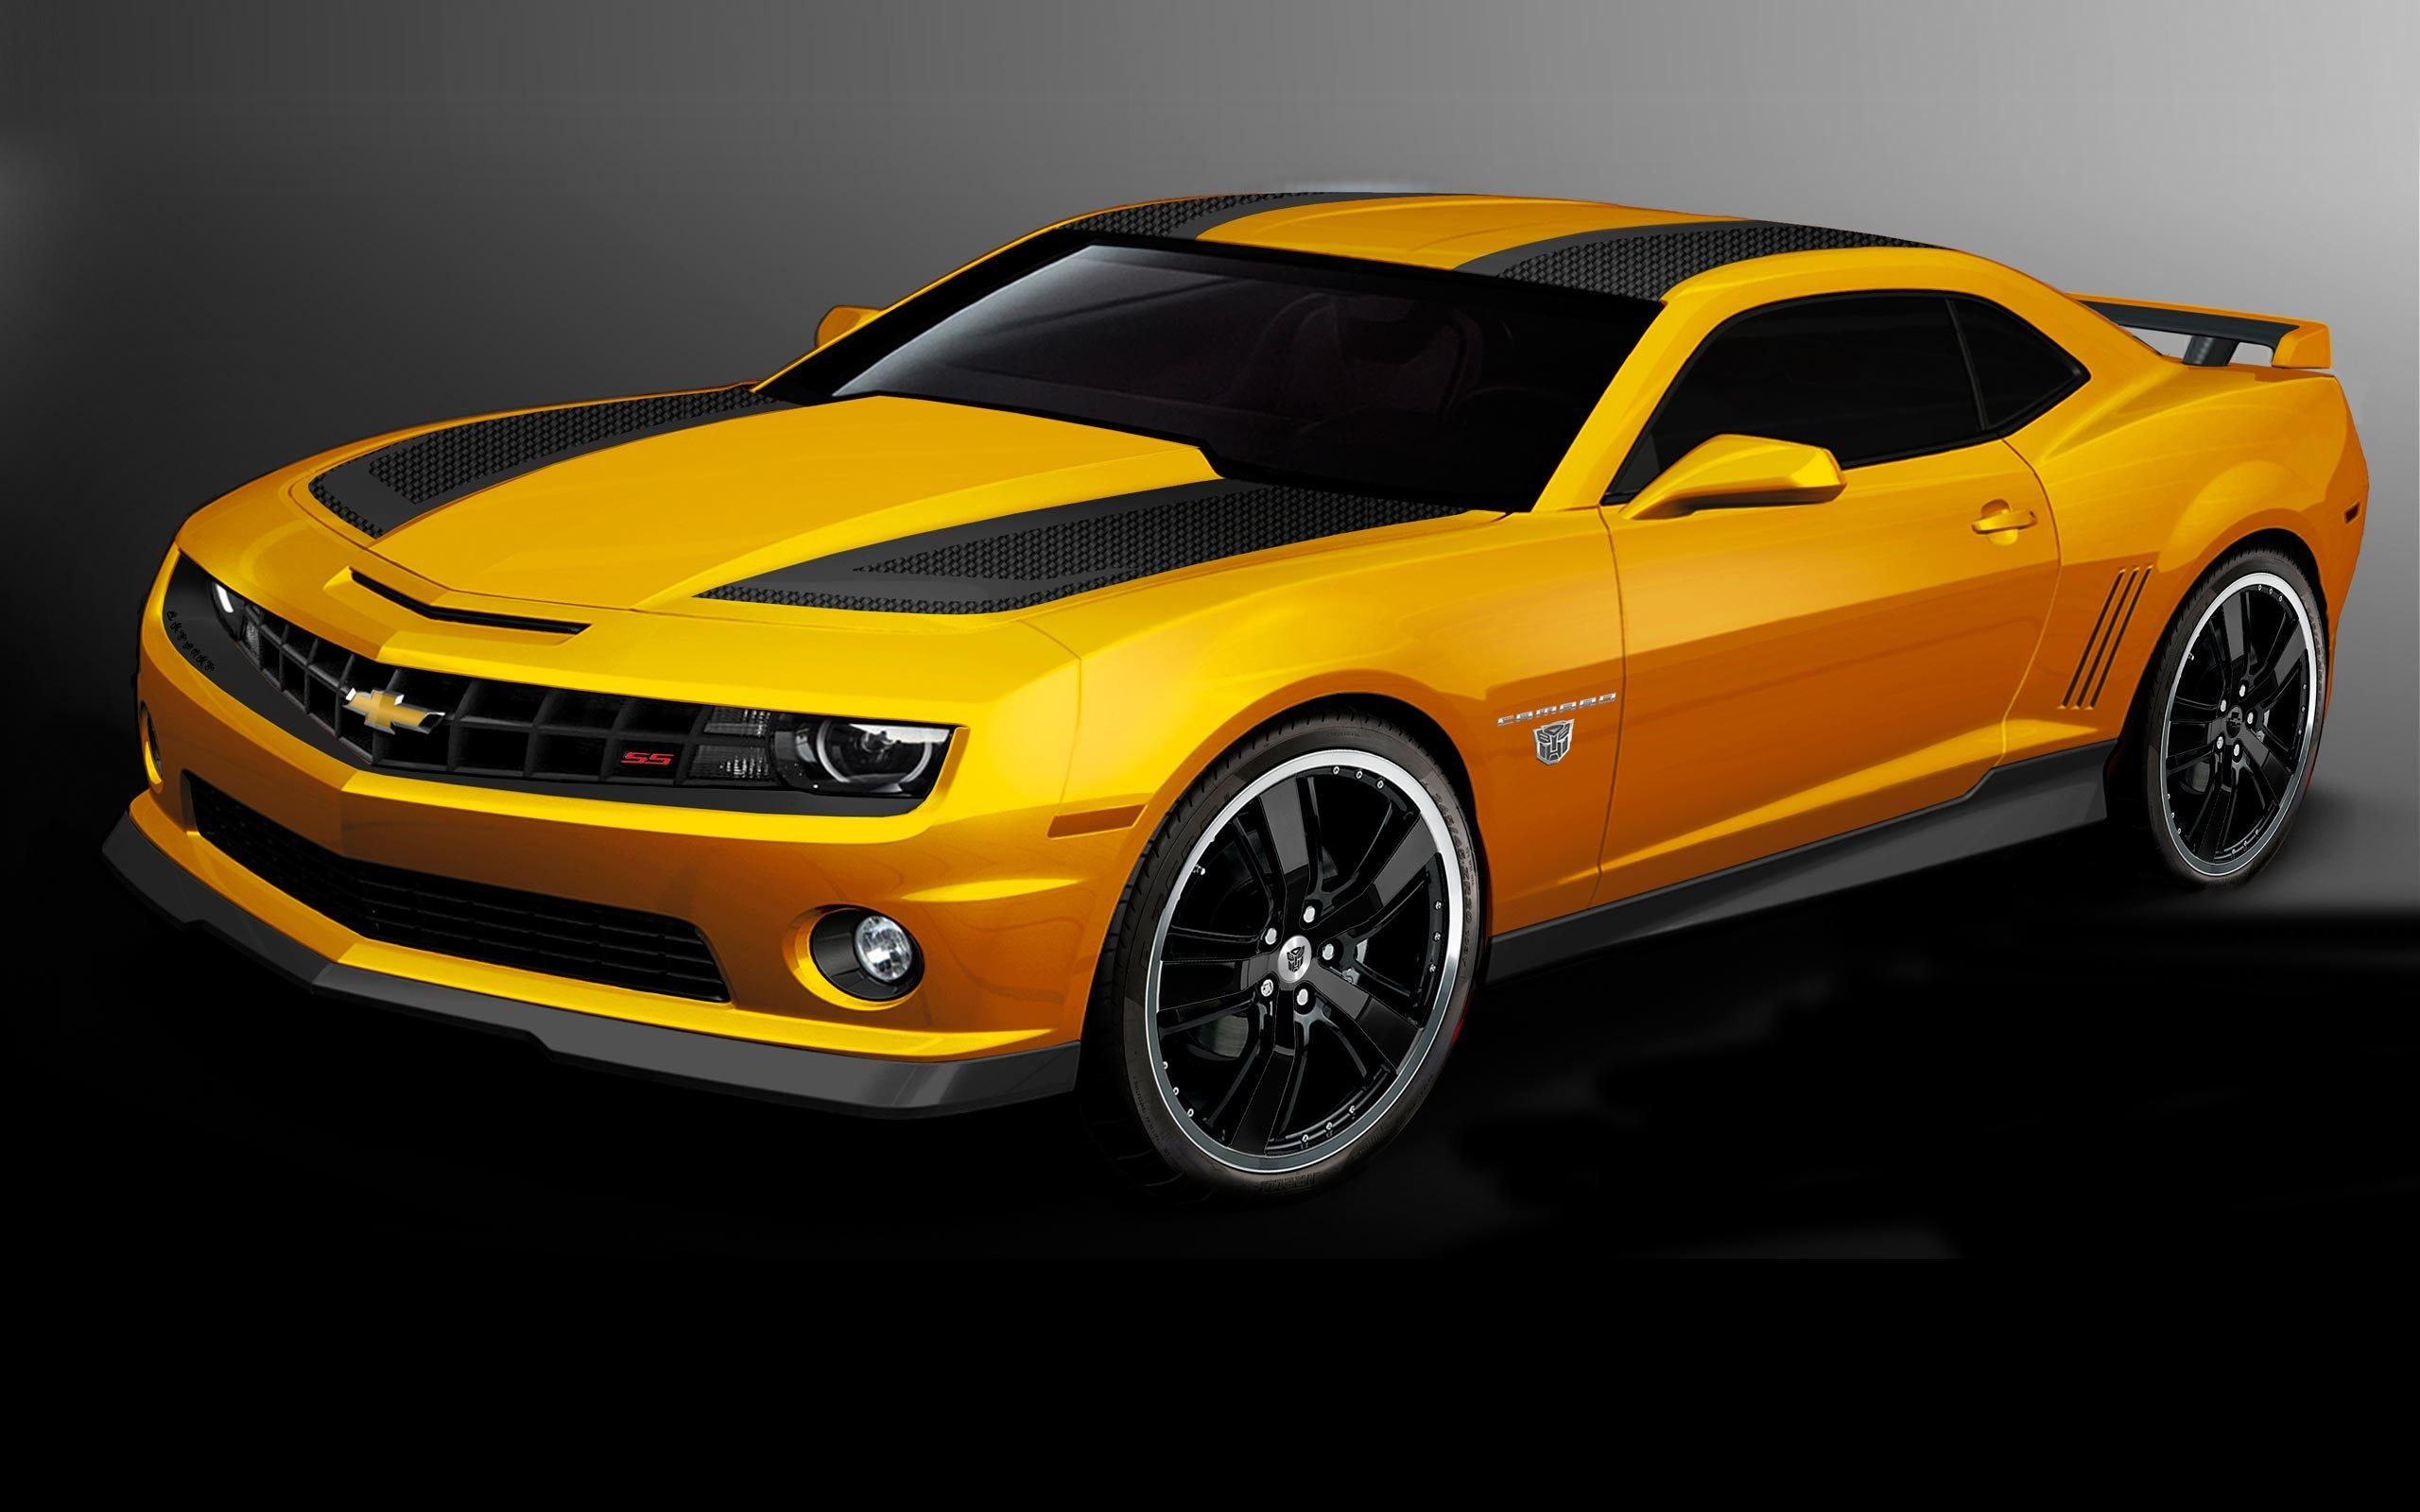 New Black And Yellow Cool Cars 16 Desktop Background On This Month